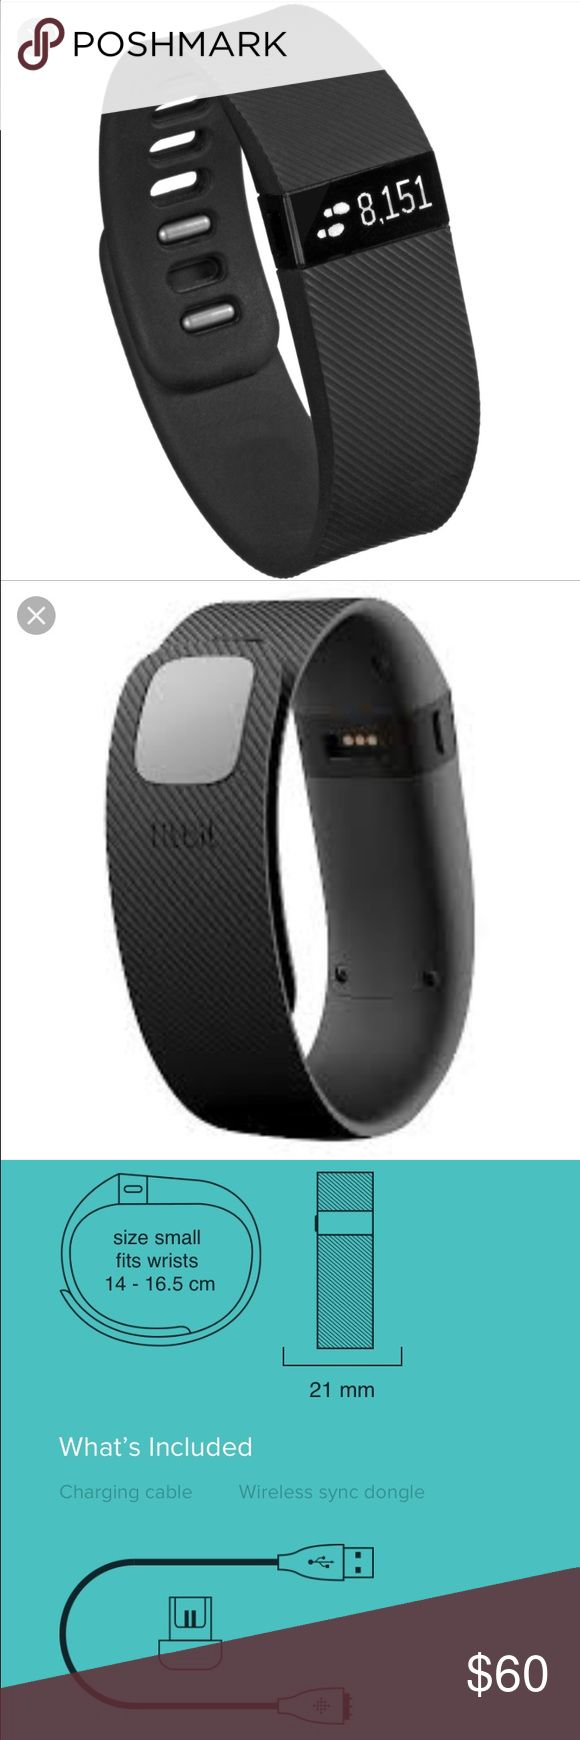 Fitbit Charge Small Energize your day with Charge—a wristband that tracks steps, distance, calories burned. Comes with original box and charger. Only used for 3 months. fitbit Accessories Watches